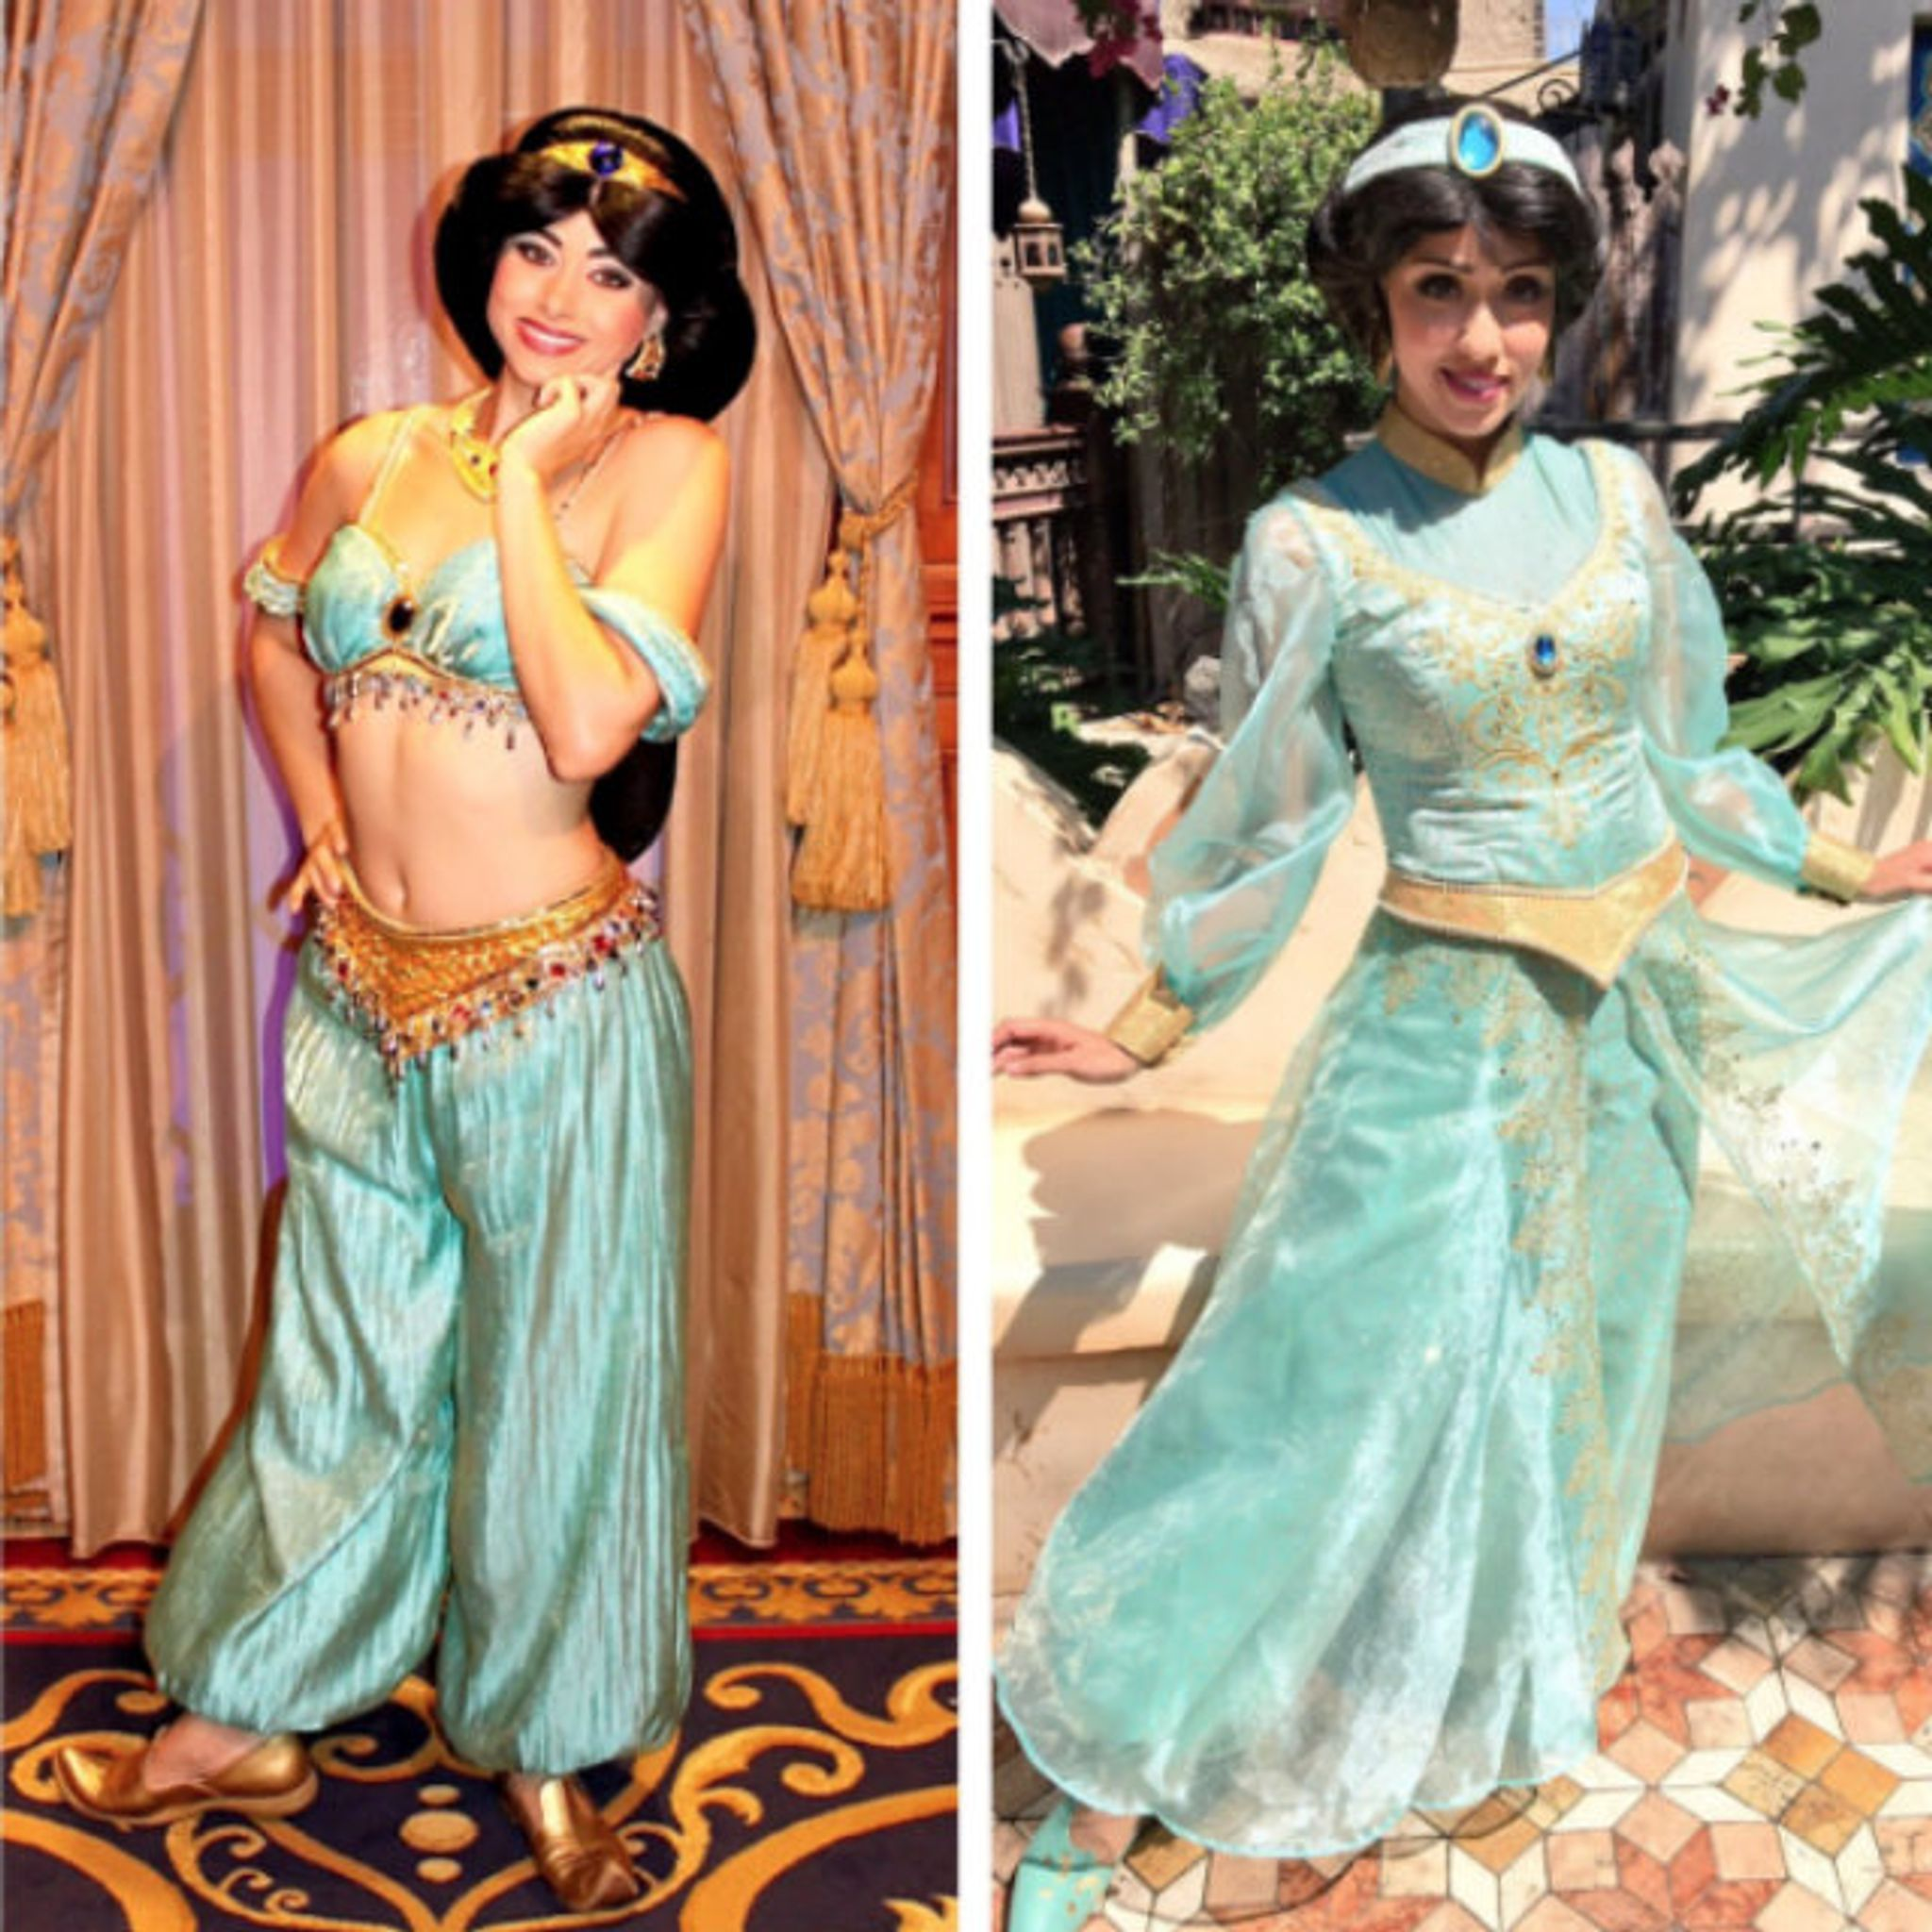 Disneyu0027s Princess Jasmine wonu0027t be showing as much skin anymore Report - Washington Times  sc 1 st  Washington Times & Disneyu0027s Princess Jasmine wonu0027t be showing as much skin anymore ...